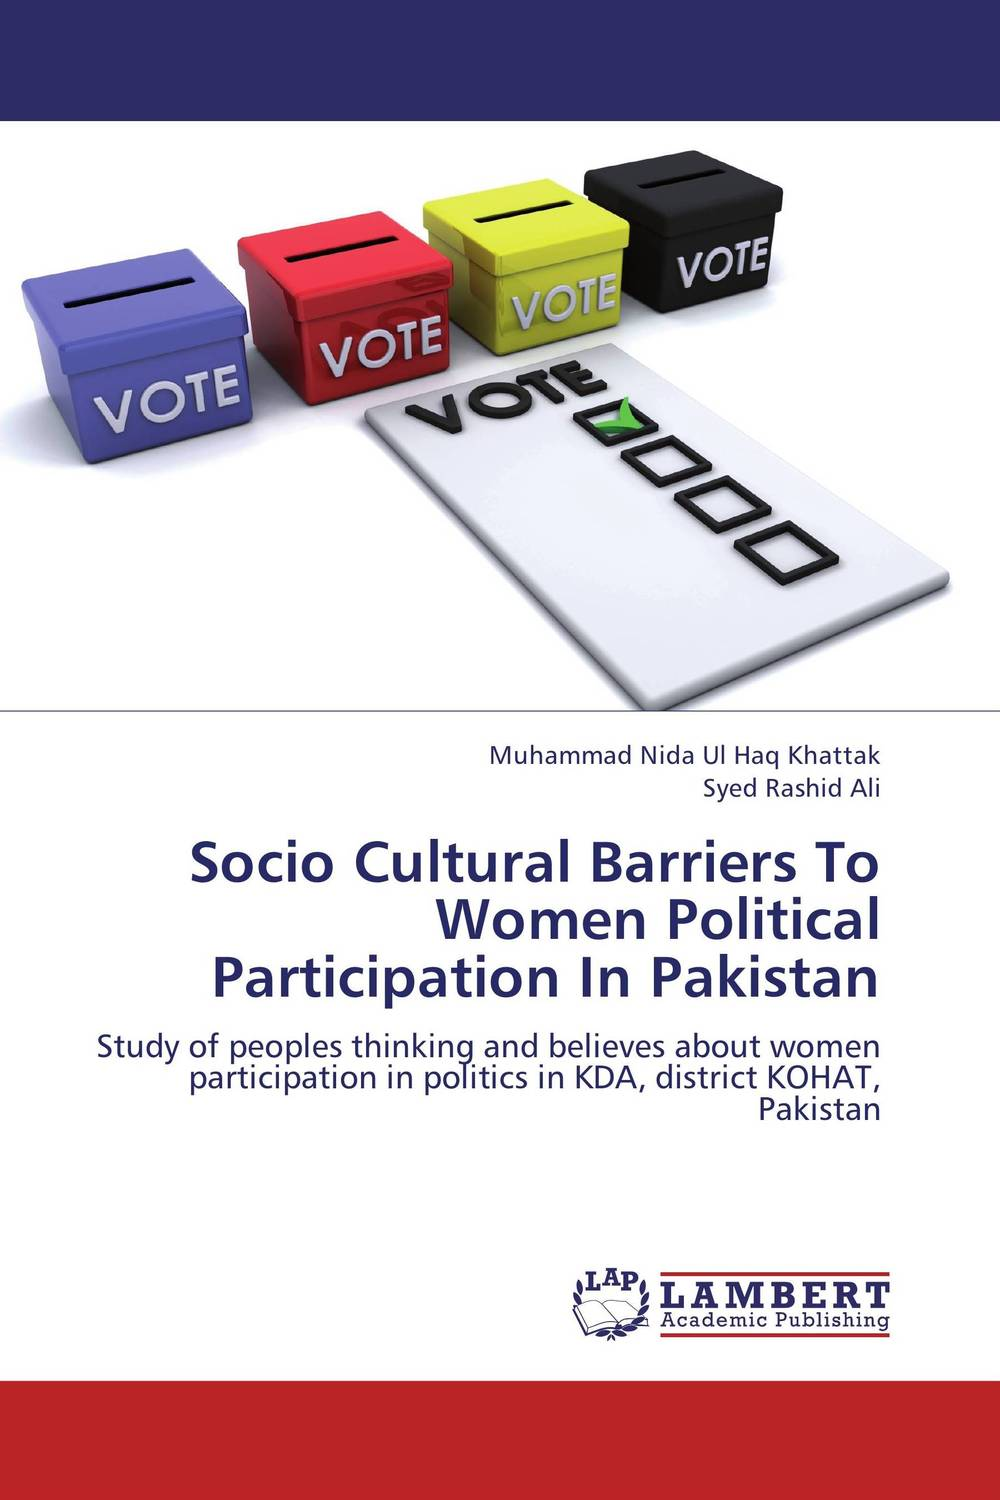 Socio Cultural Barriers To Women Political Participation In Pakistan prostate screening motivating factors and barriers